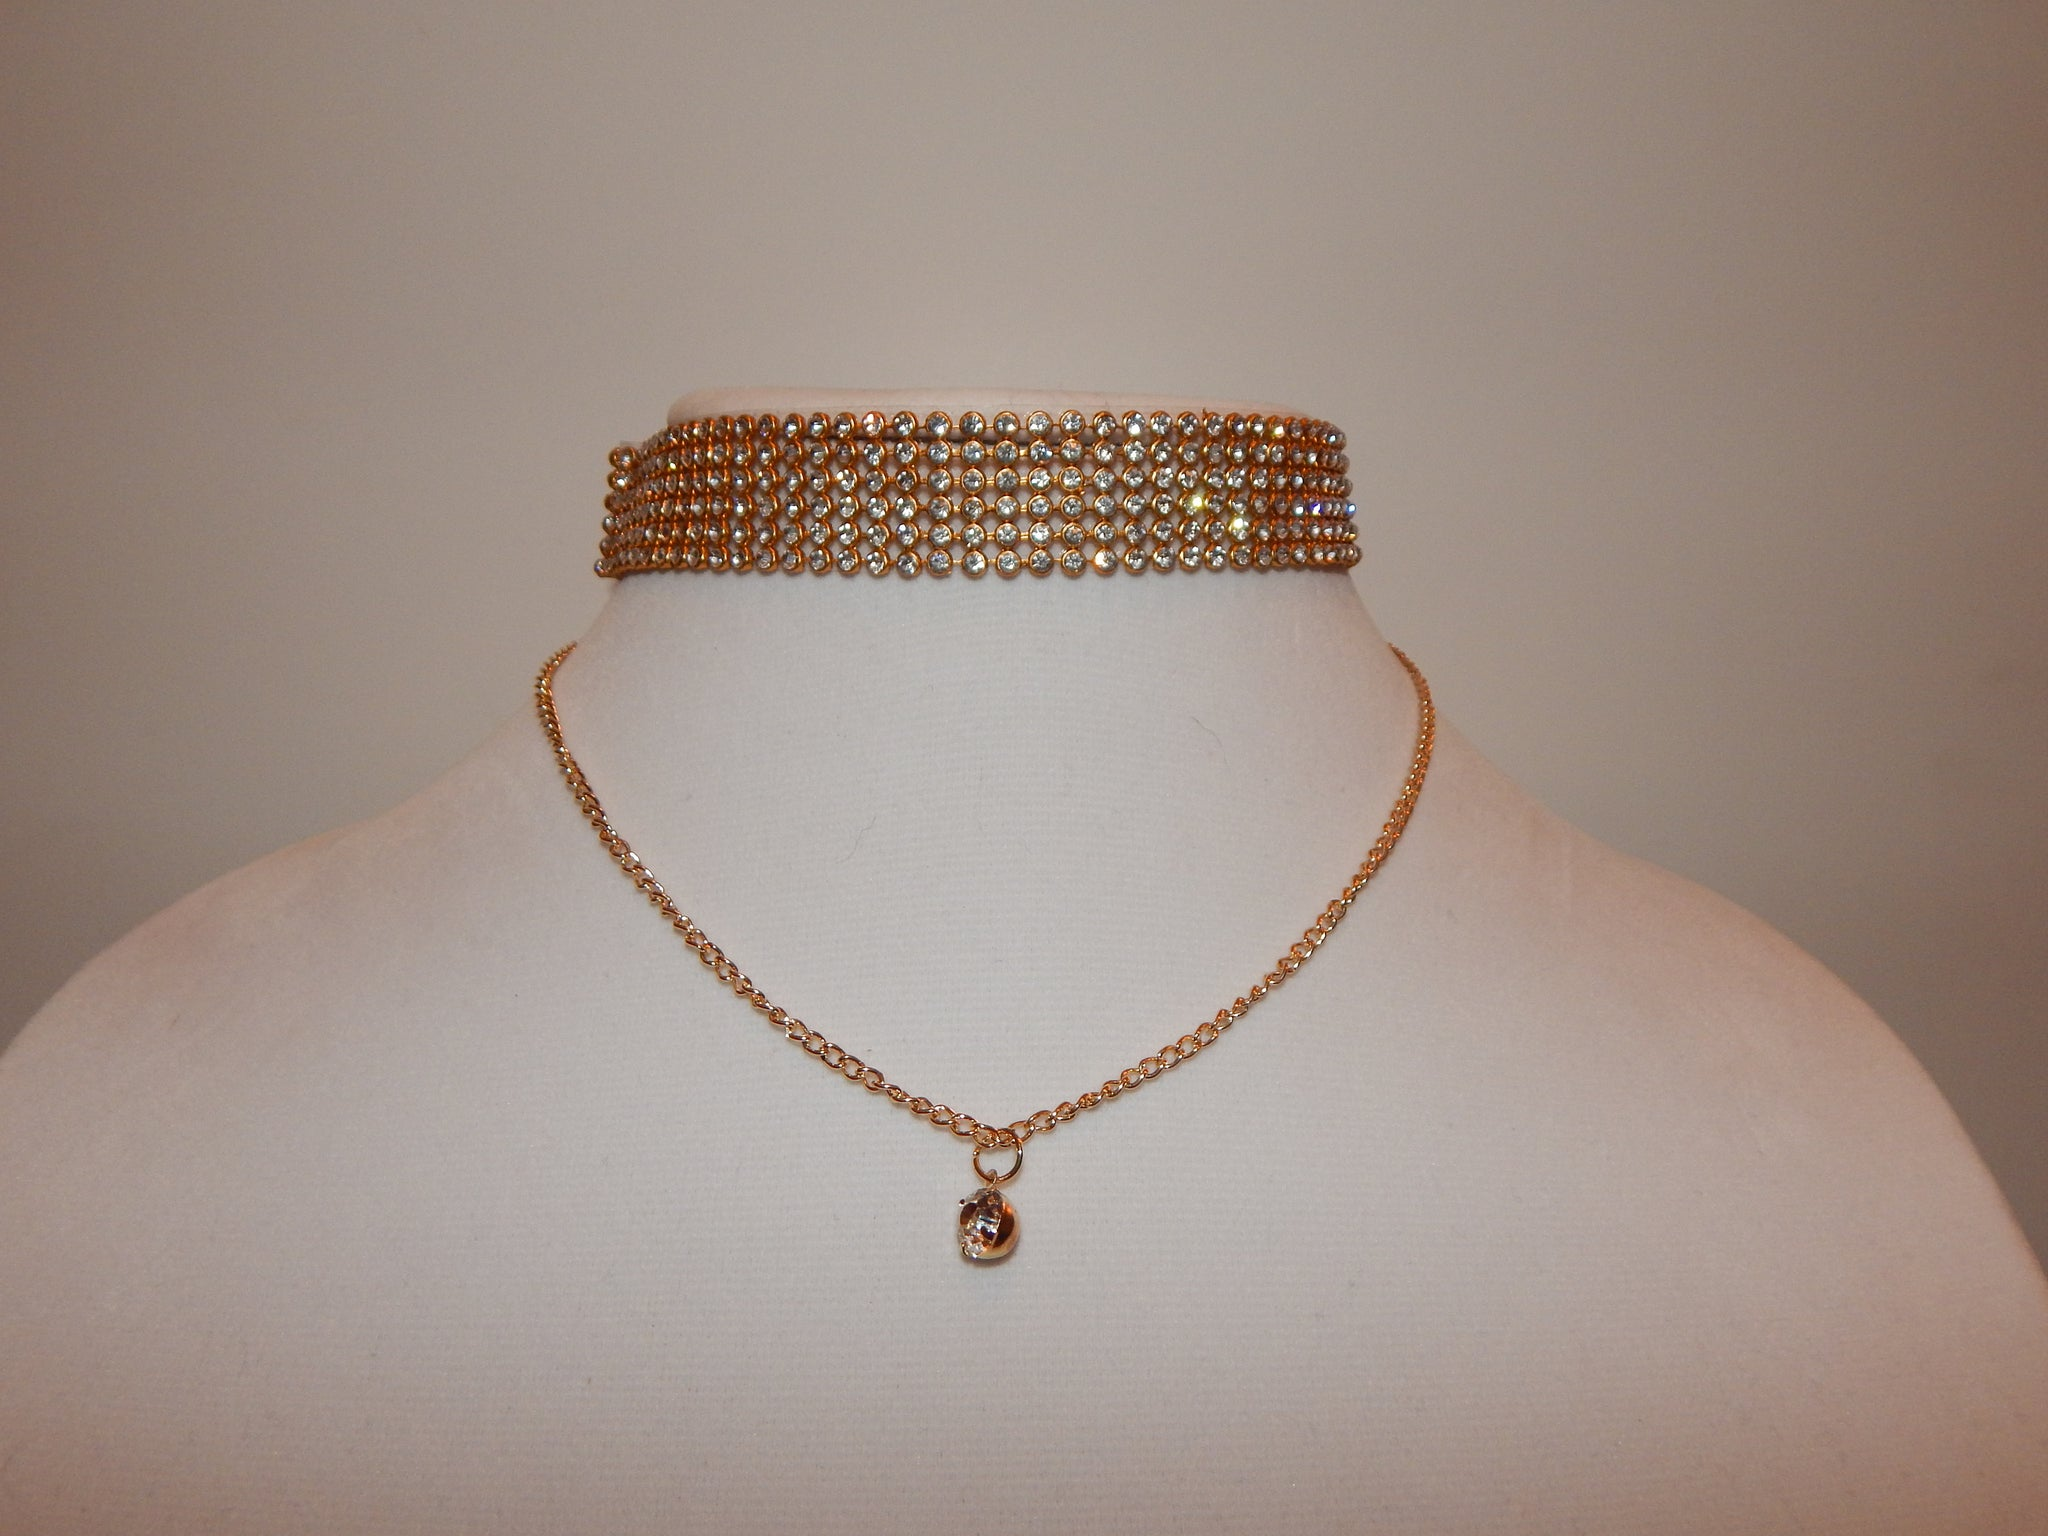 Gold 6-Rowed Choker